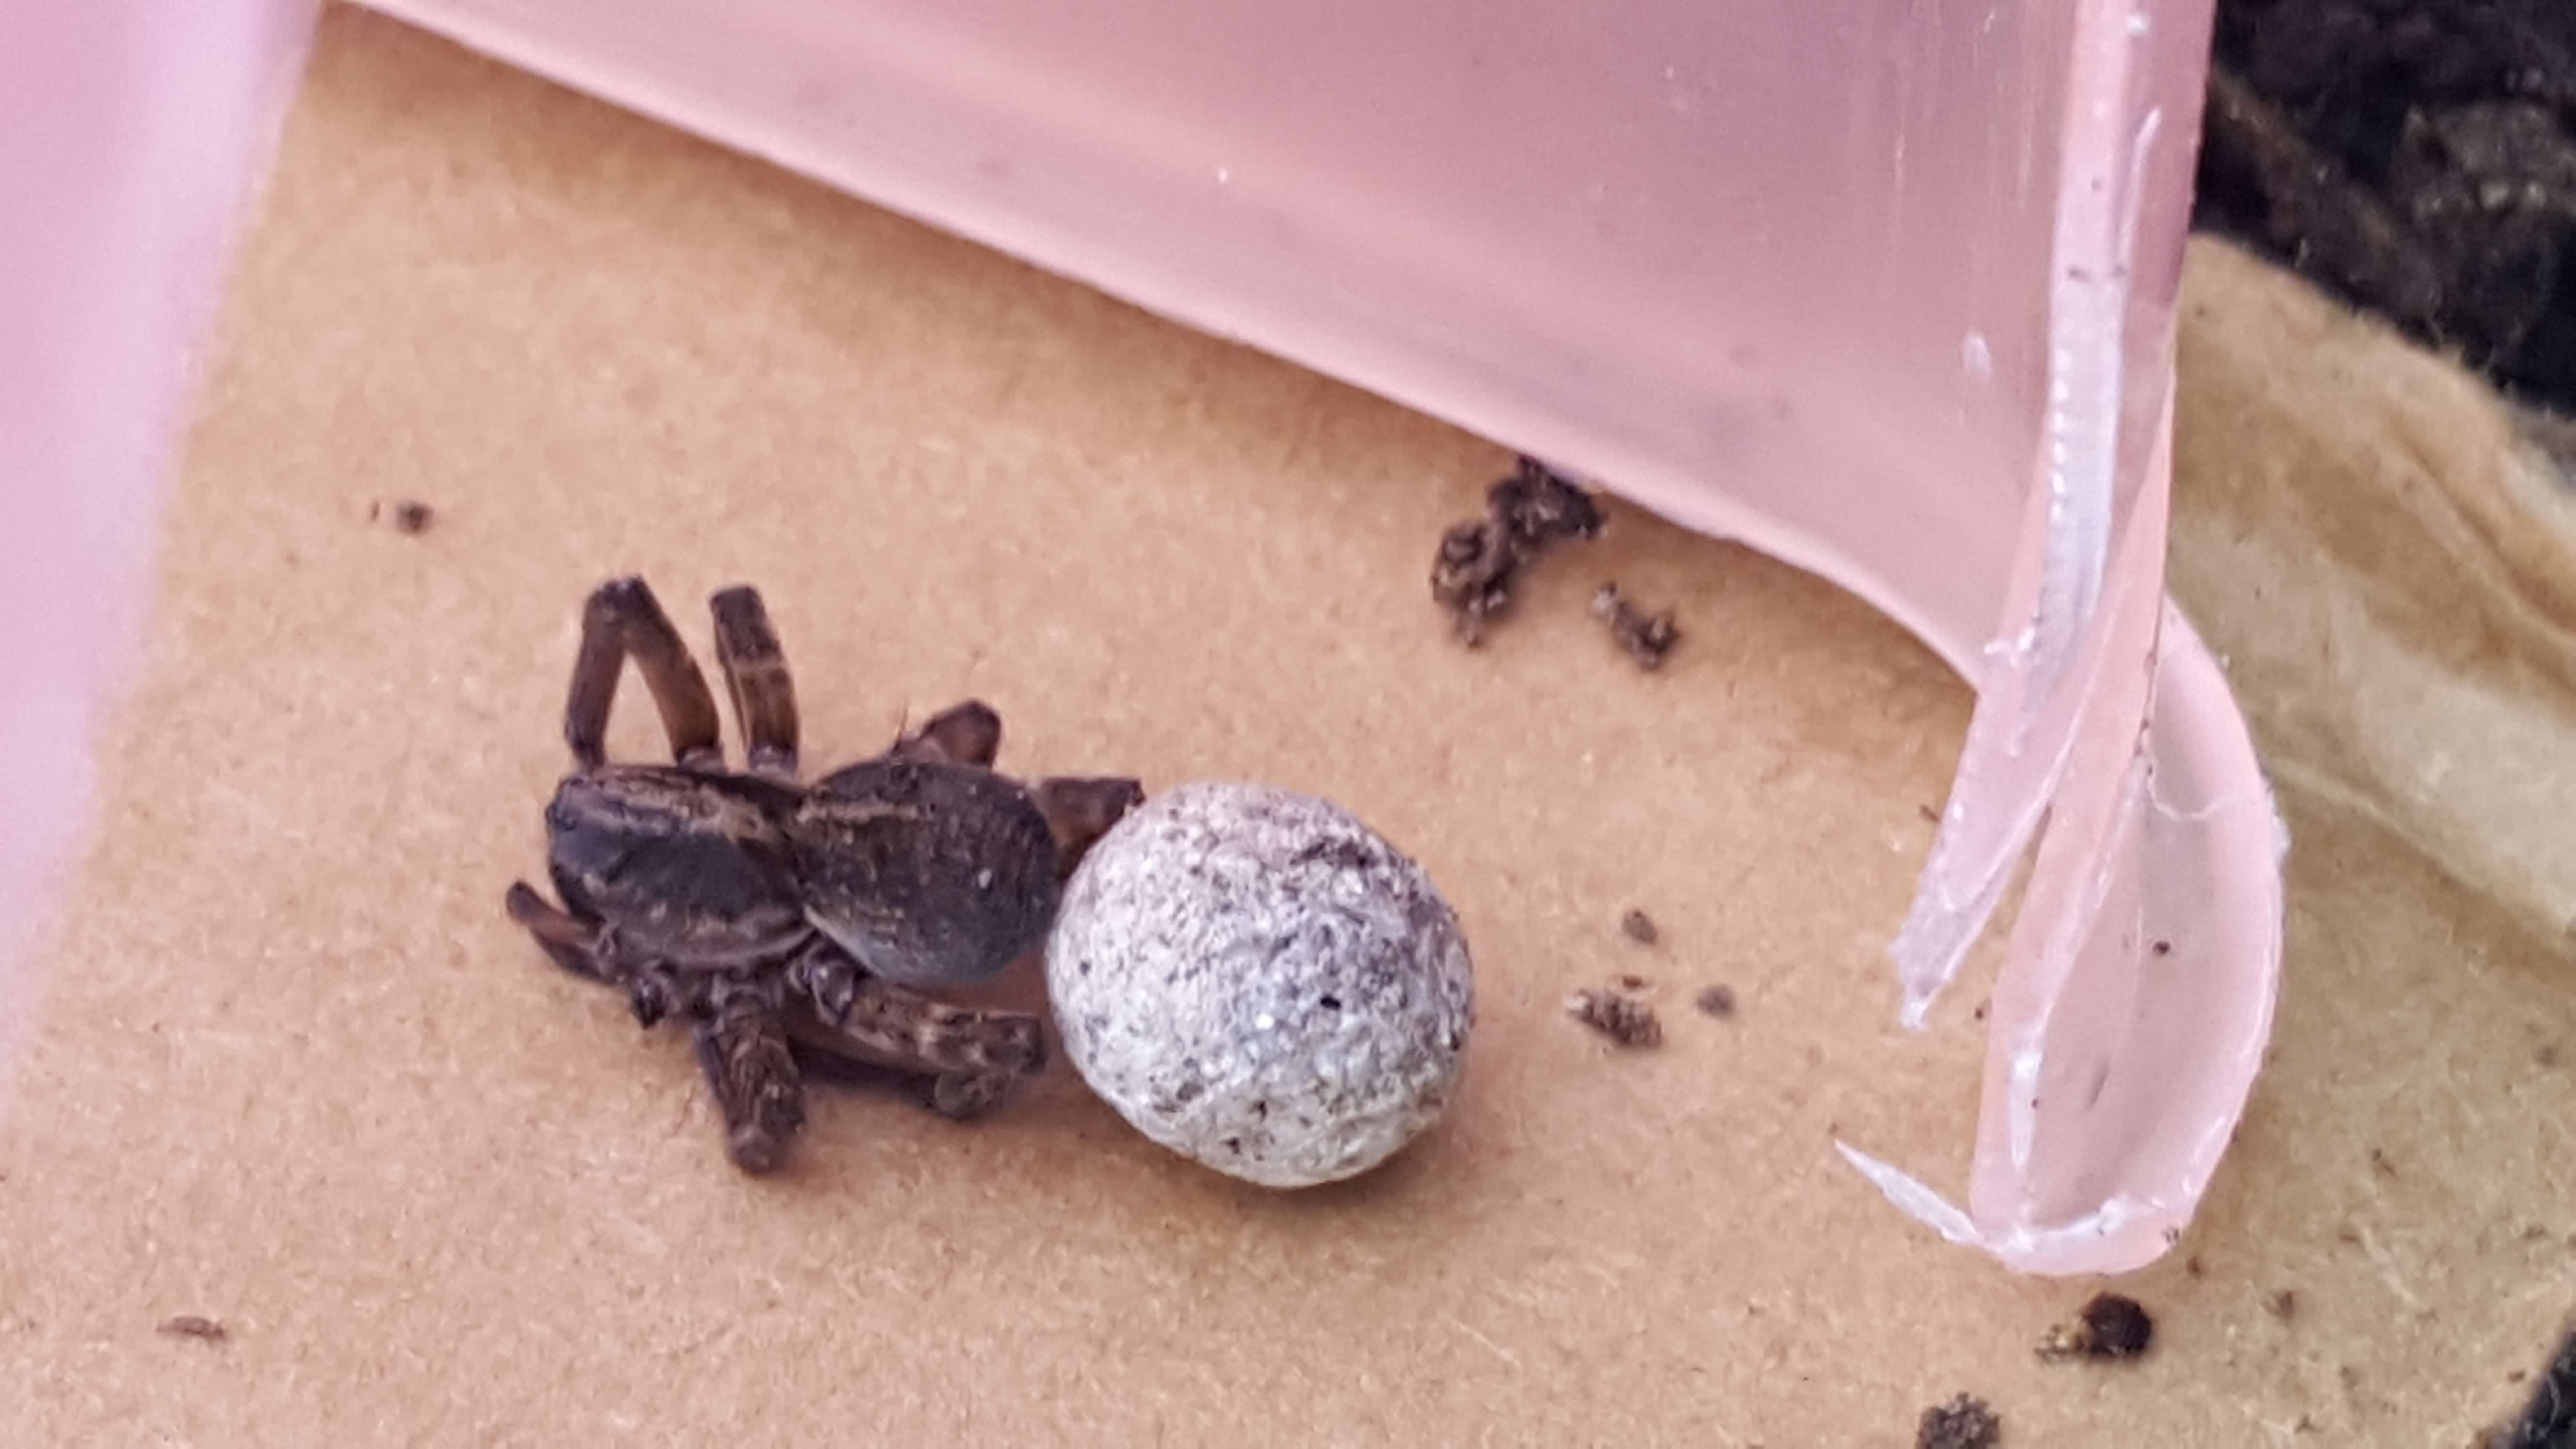 Picture of Trochosa terricola - Female - Dorsal,Egg sacs